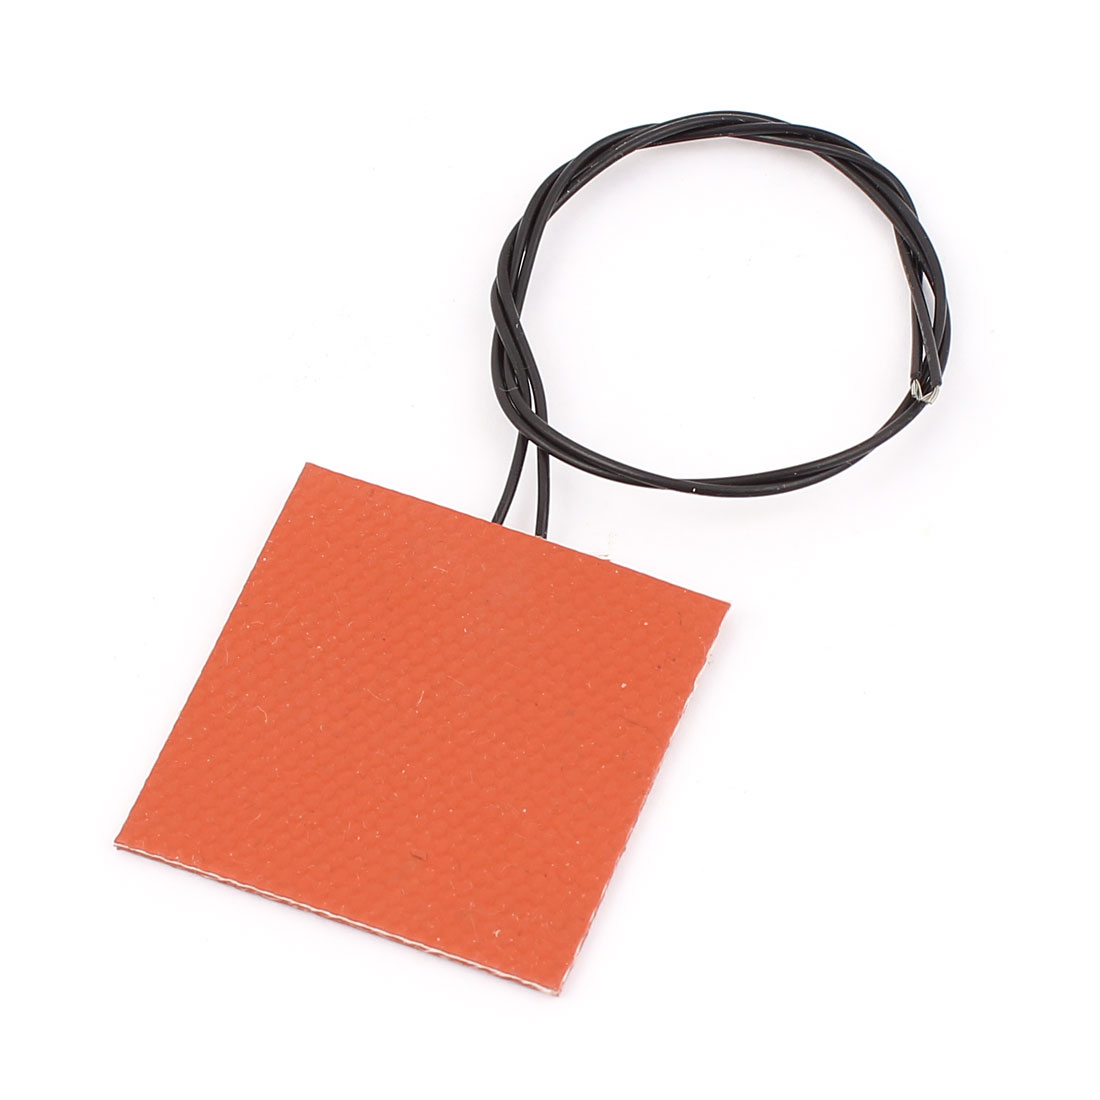 12V 5W Silicone Heating Plate 3D Printer Heater Flexible Rubber Heater 40x40mm